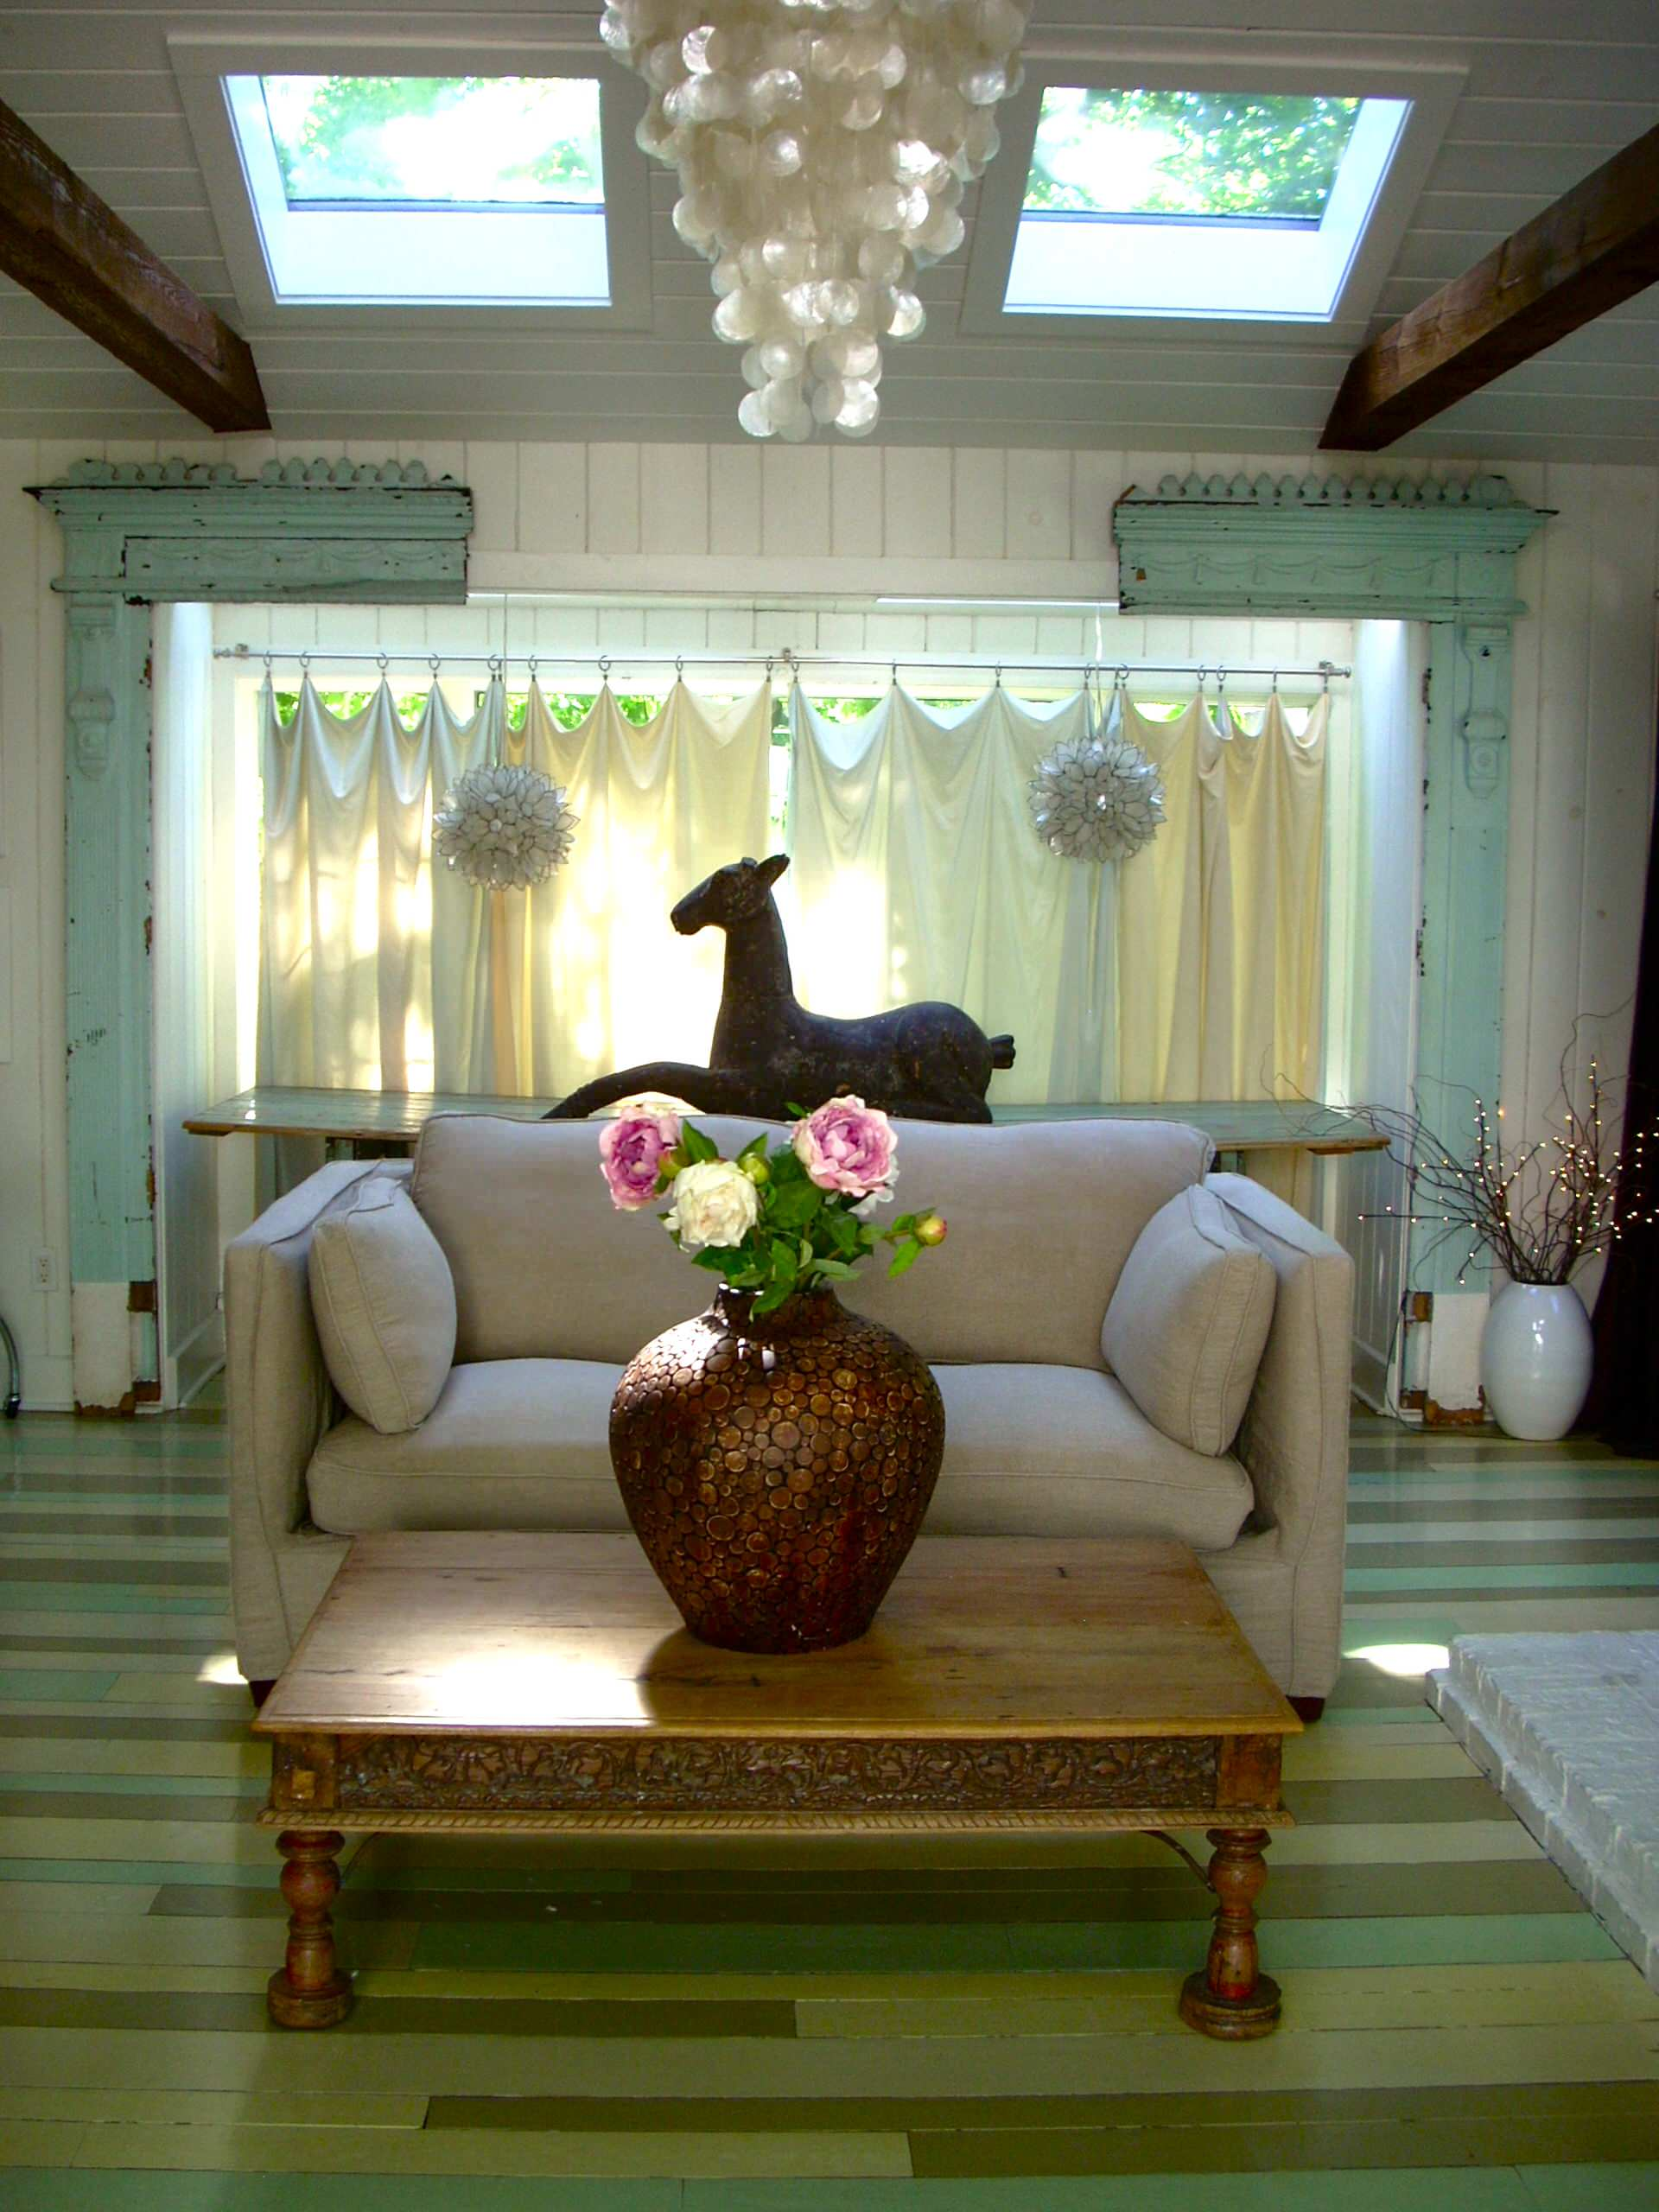 Ways To Fill Empty Corners With Floor Vases Healthy Home Cleaners - Clear glass floor vases